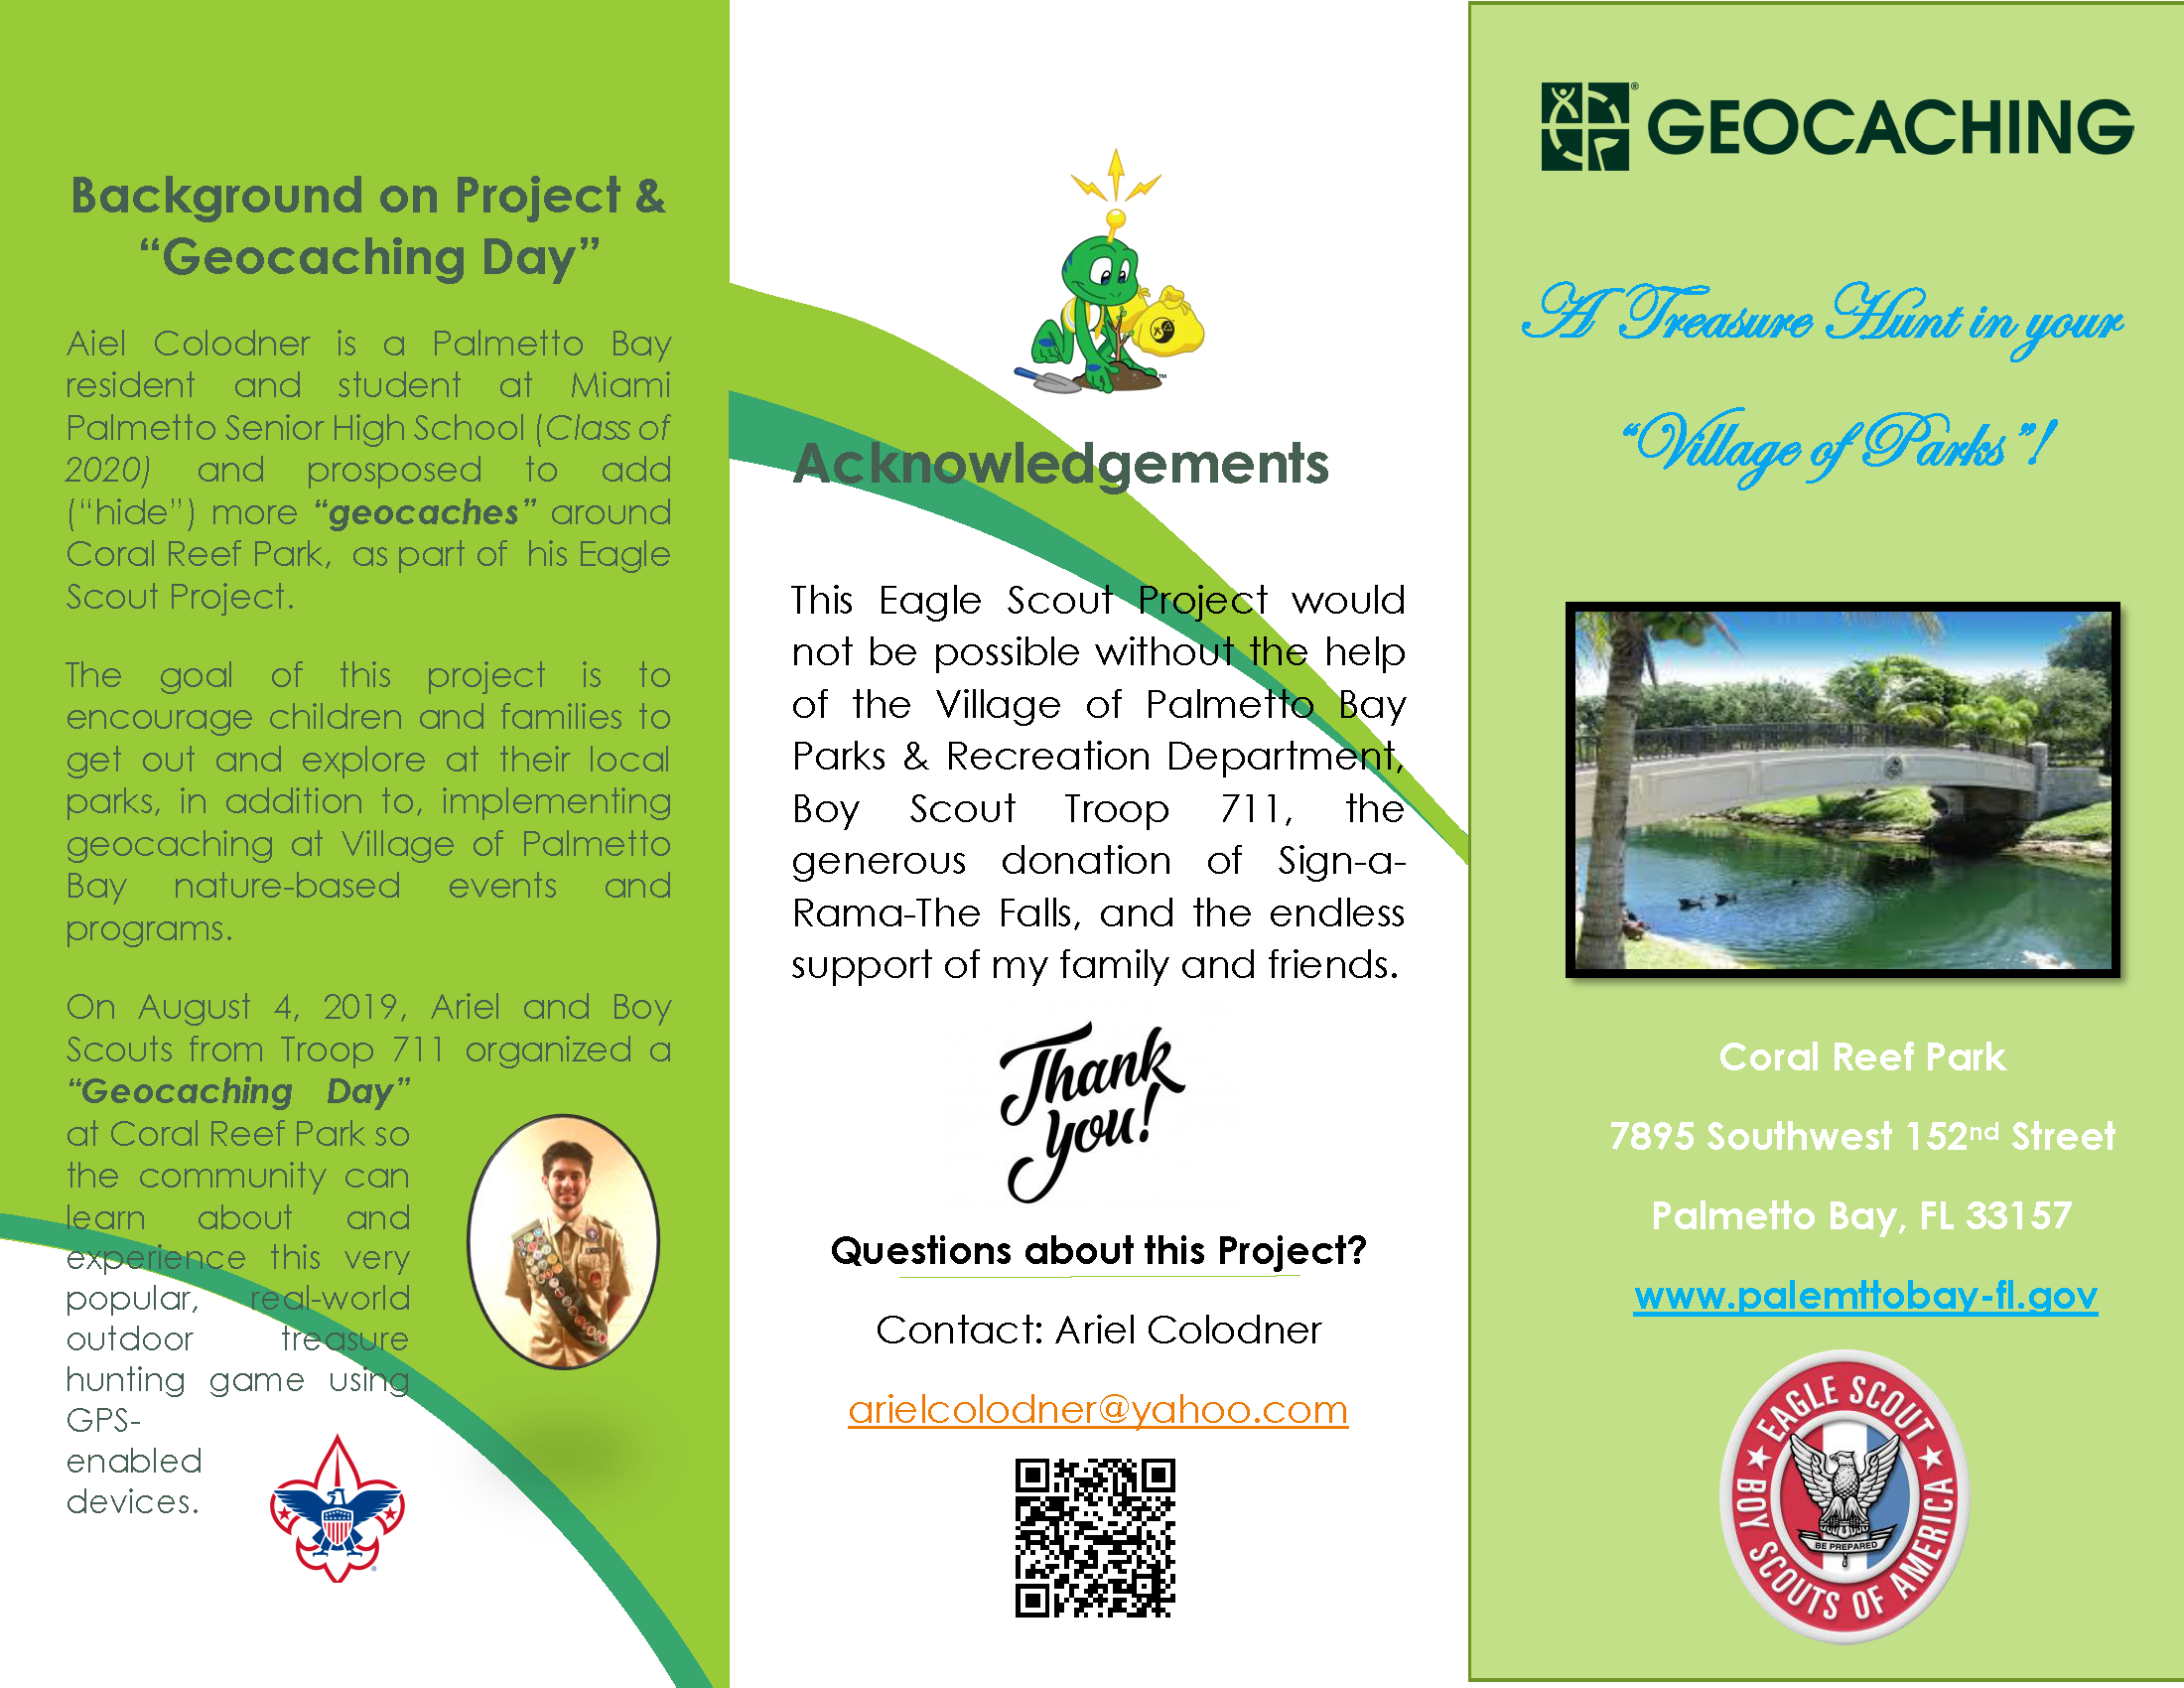 "Background on Project & ""Geocaching Day"", Acknowledgements and Geocaching Coral Reef Park 7895"